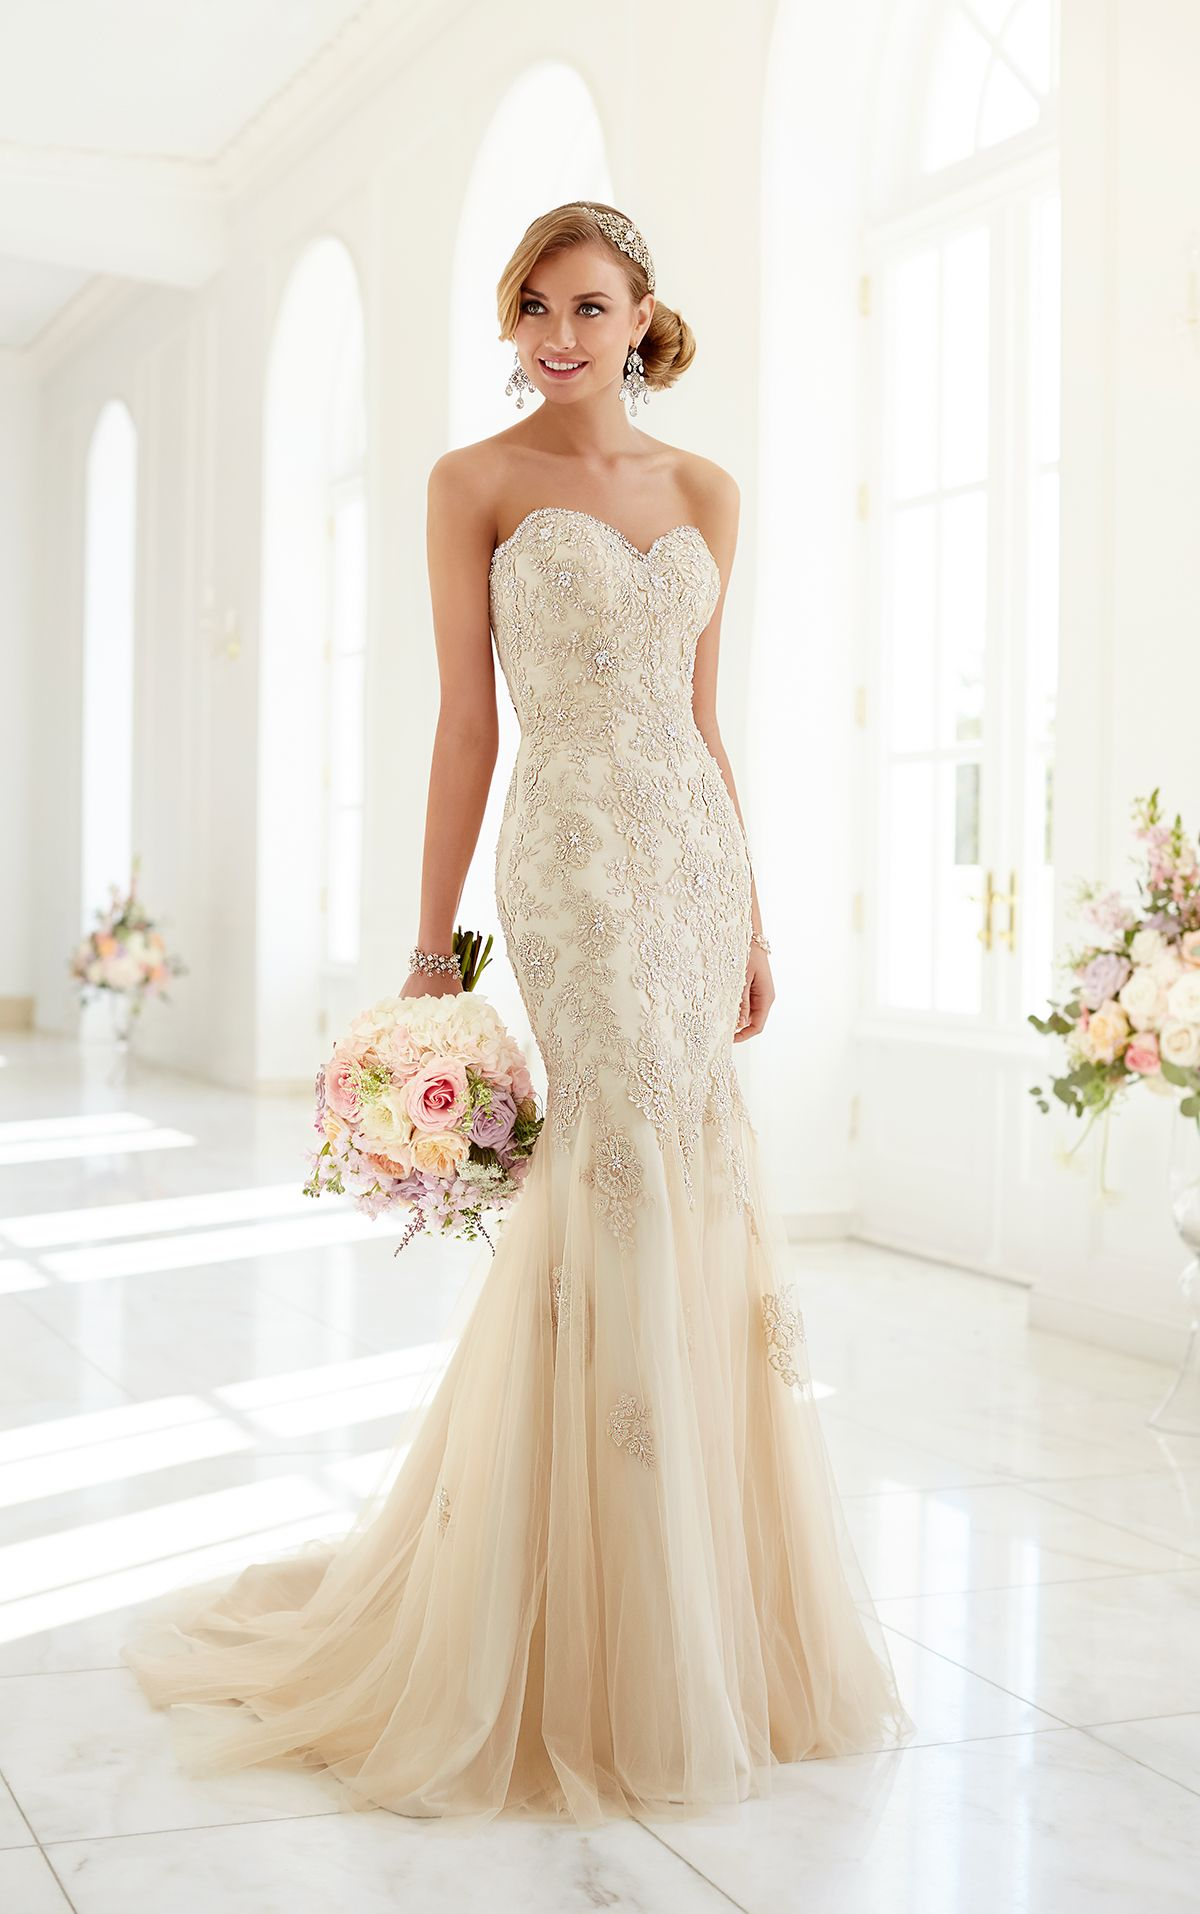 Extravagant stella york wedding dresses stella york wedding dress